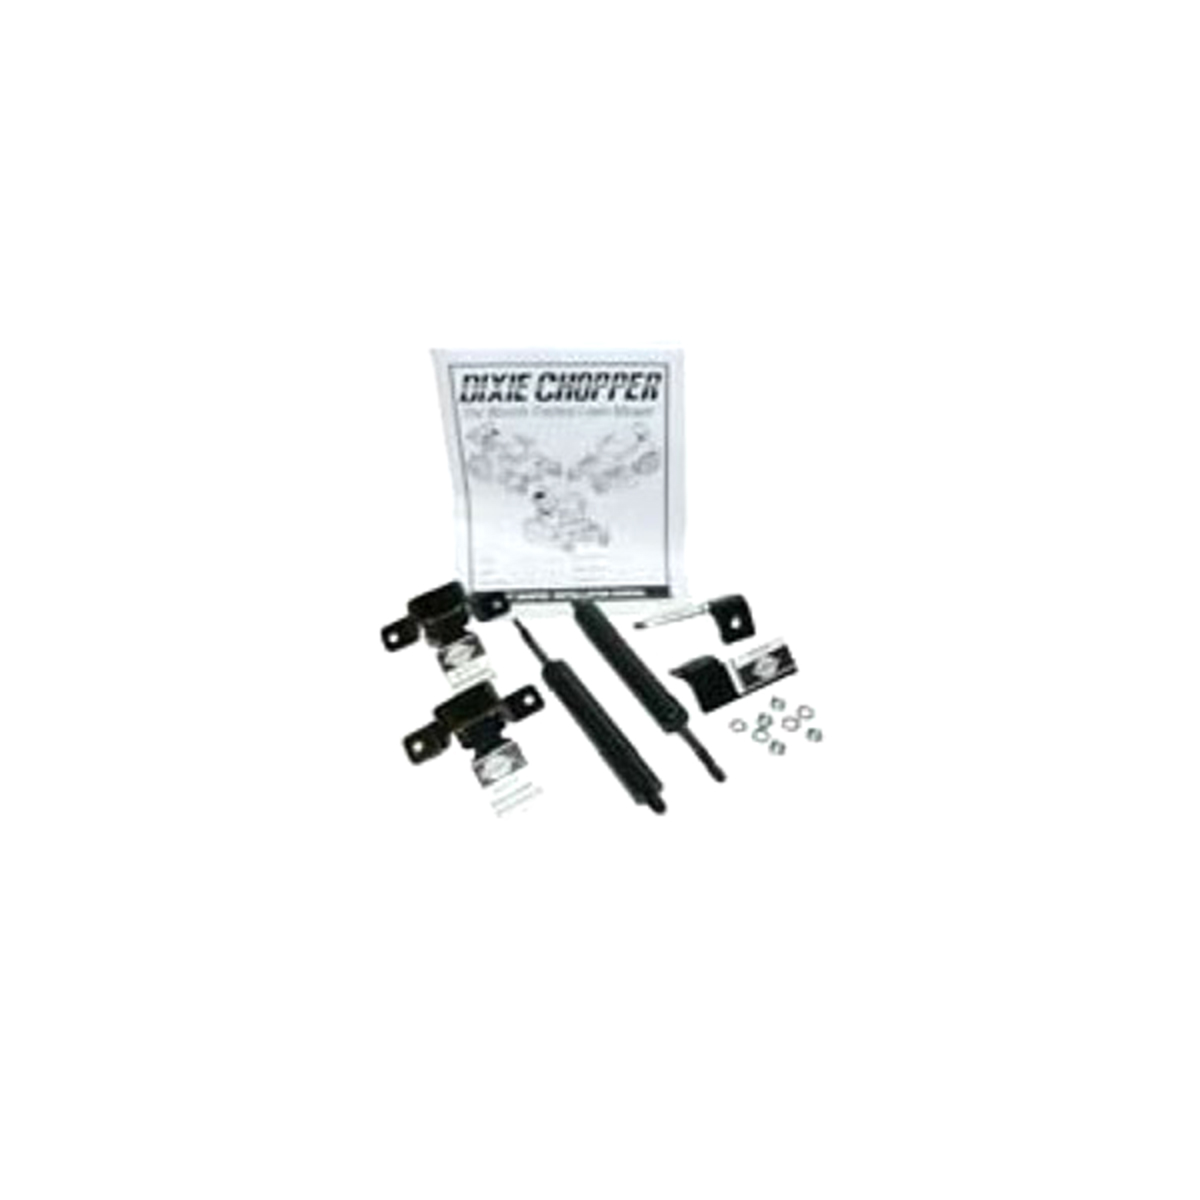 900280 Dixie Chopper Diesel Damper Kit